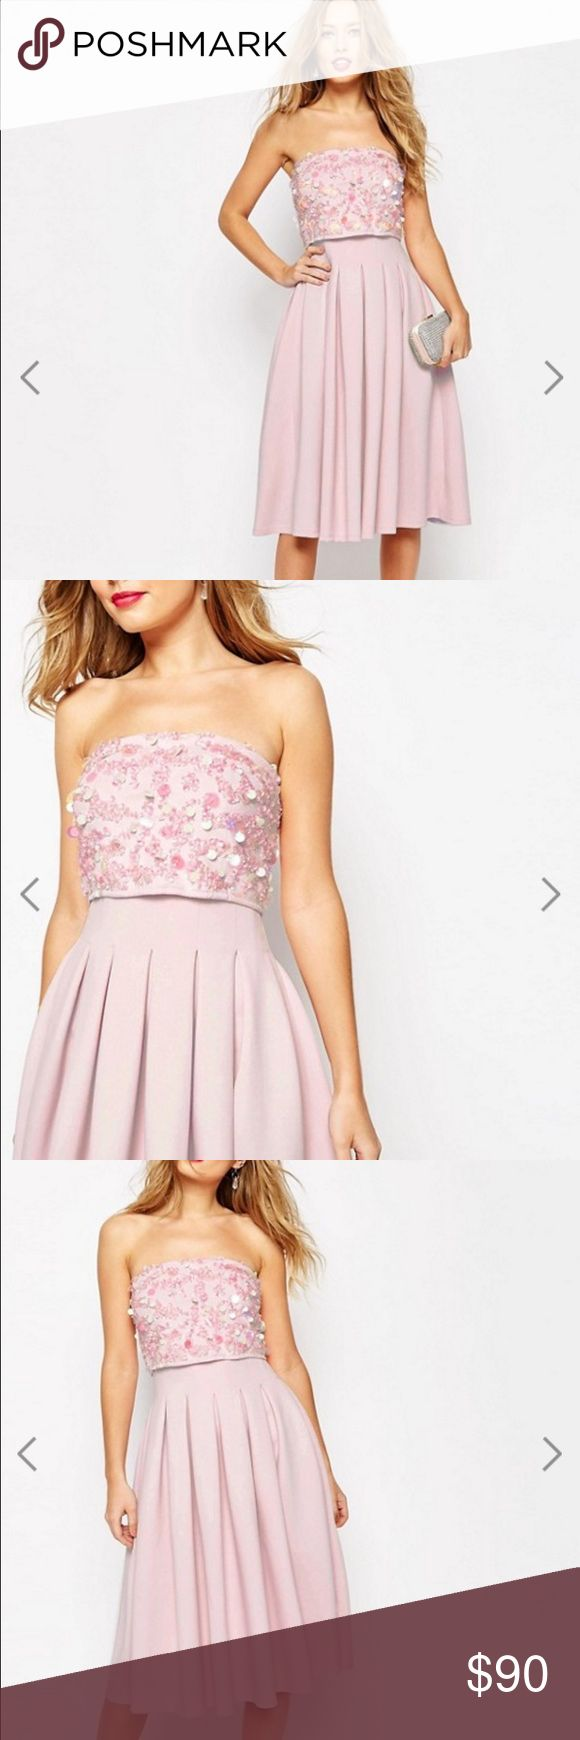 ASOS SALON Embellished Bandeau Scuba Midi Dress US size 4/UK2! best equivalent to a small! Worn once for a wedding- excellent condition. Online it says its nude but the color is definitely light pink! ASOS Dresses Midi